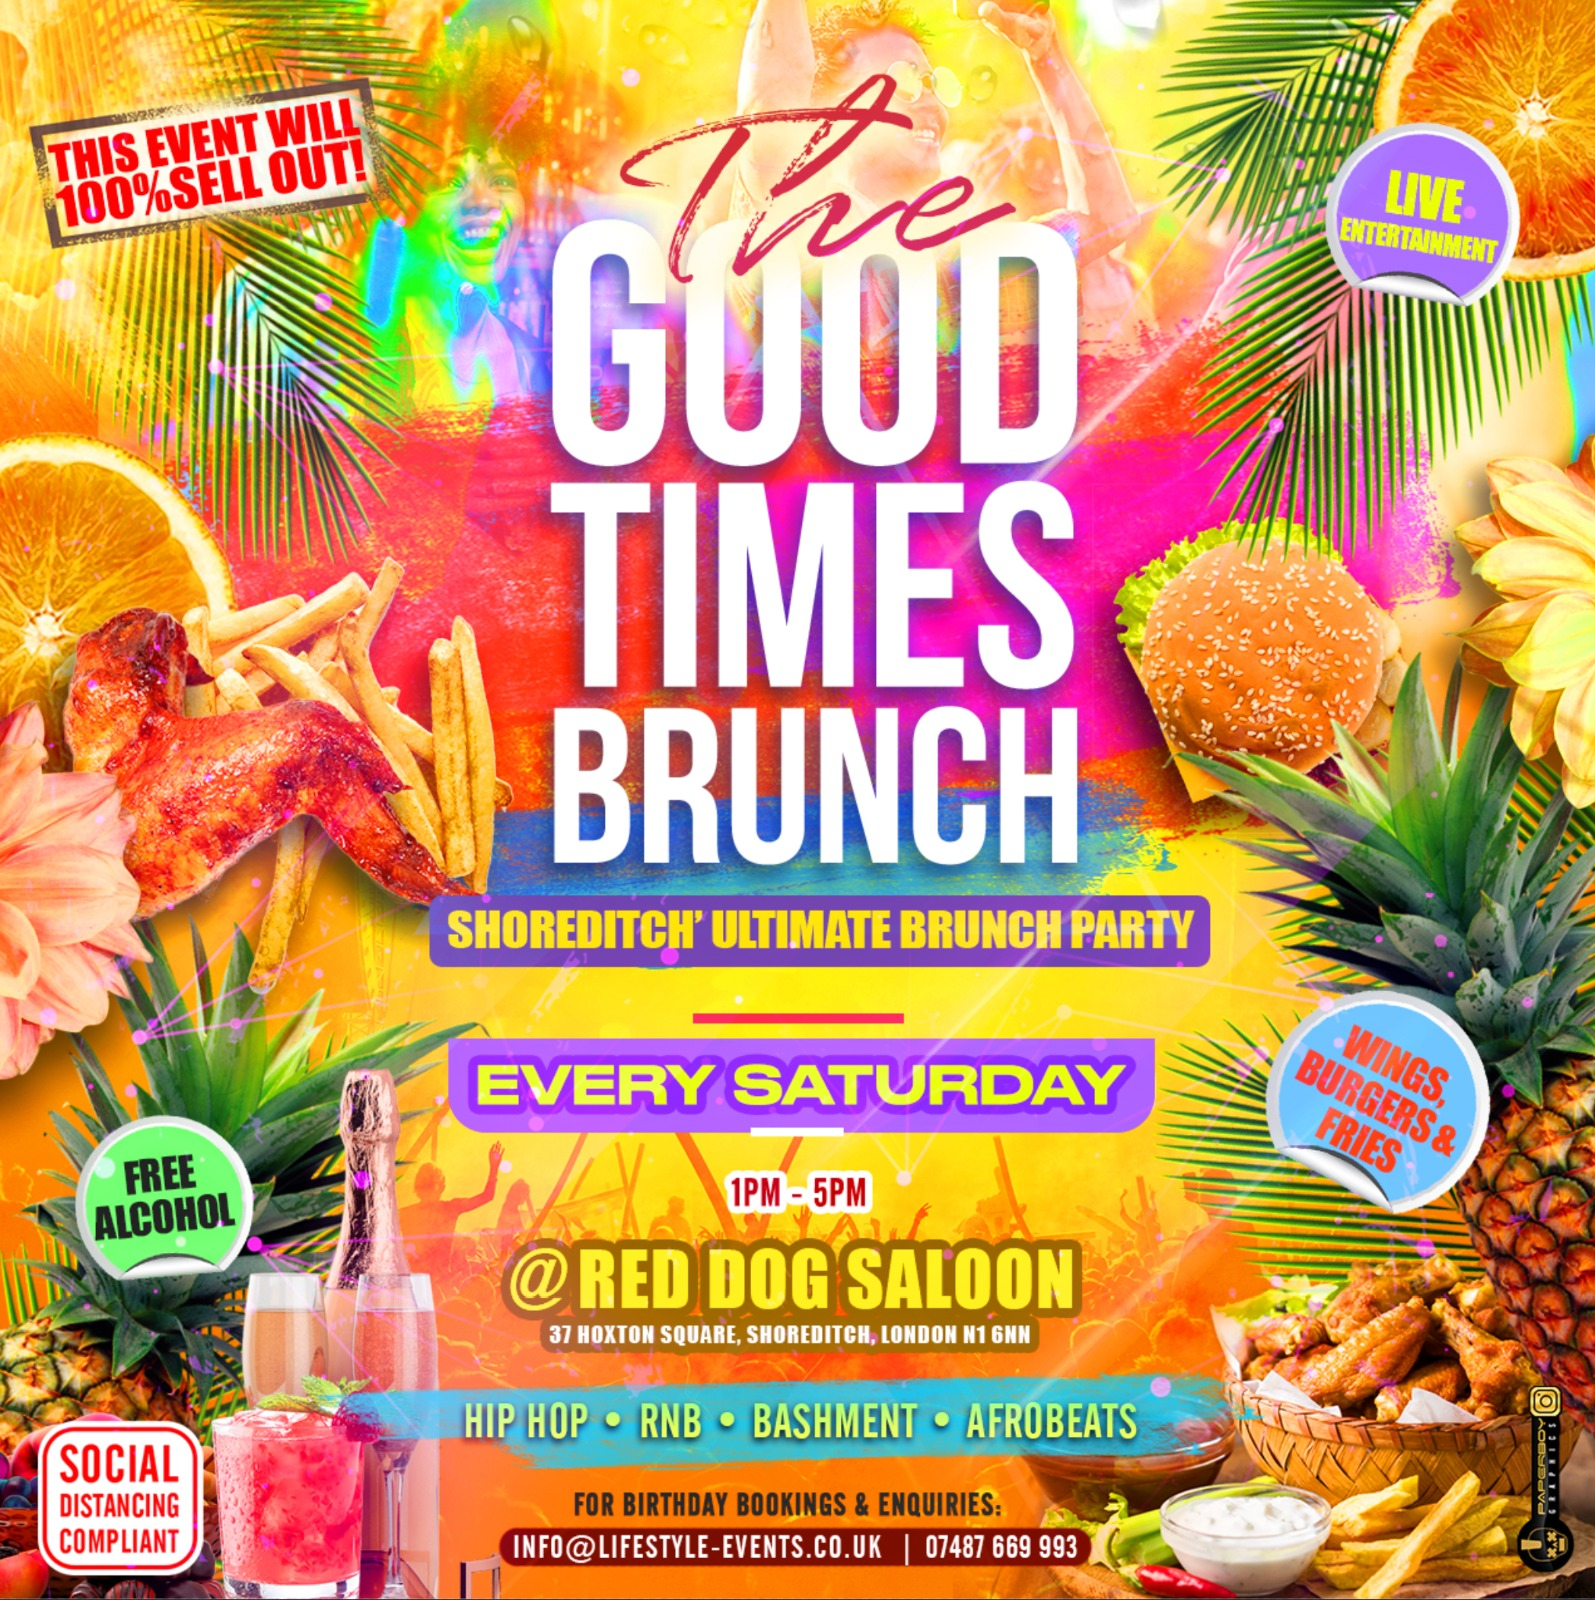 THE GOOD TIMES BRUNCH - Shoreditch Halloween Party